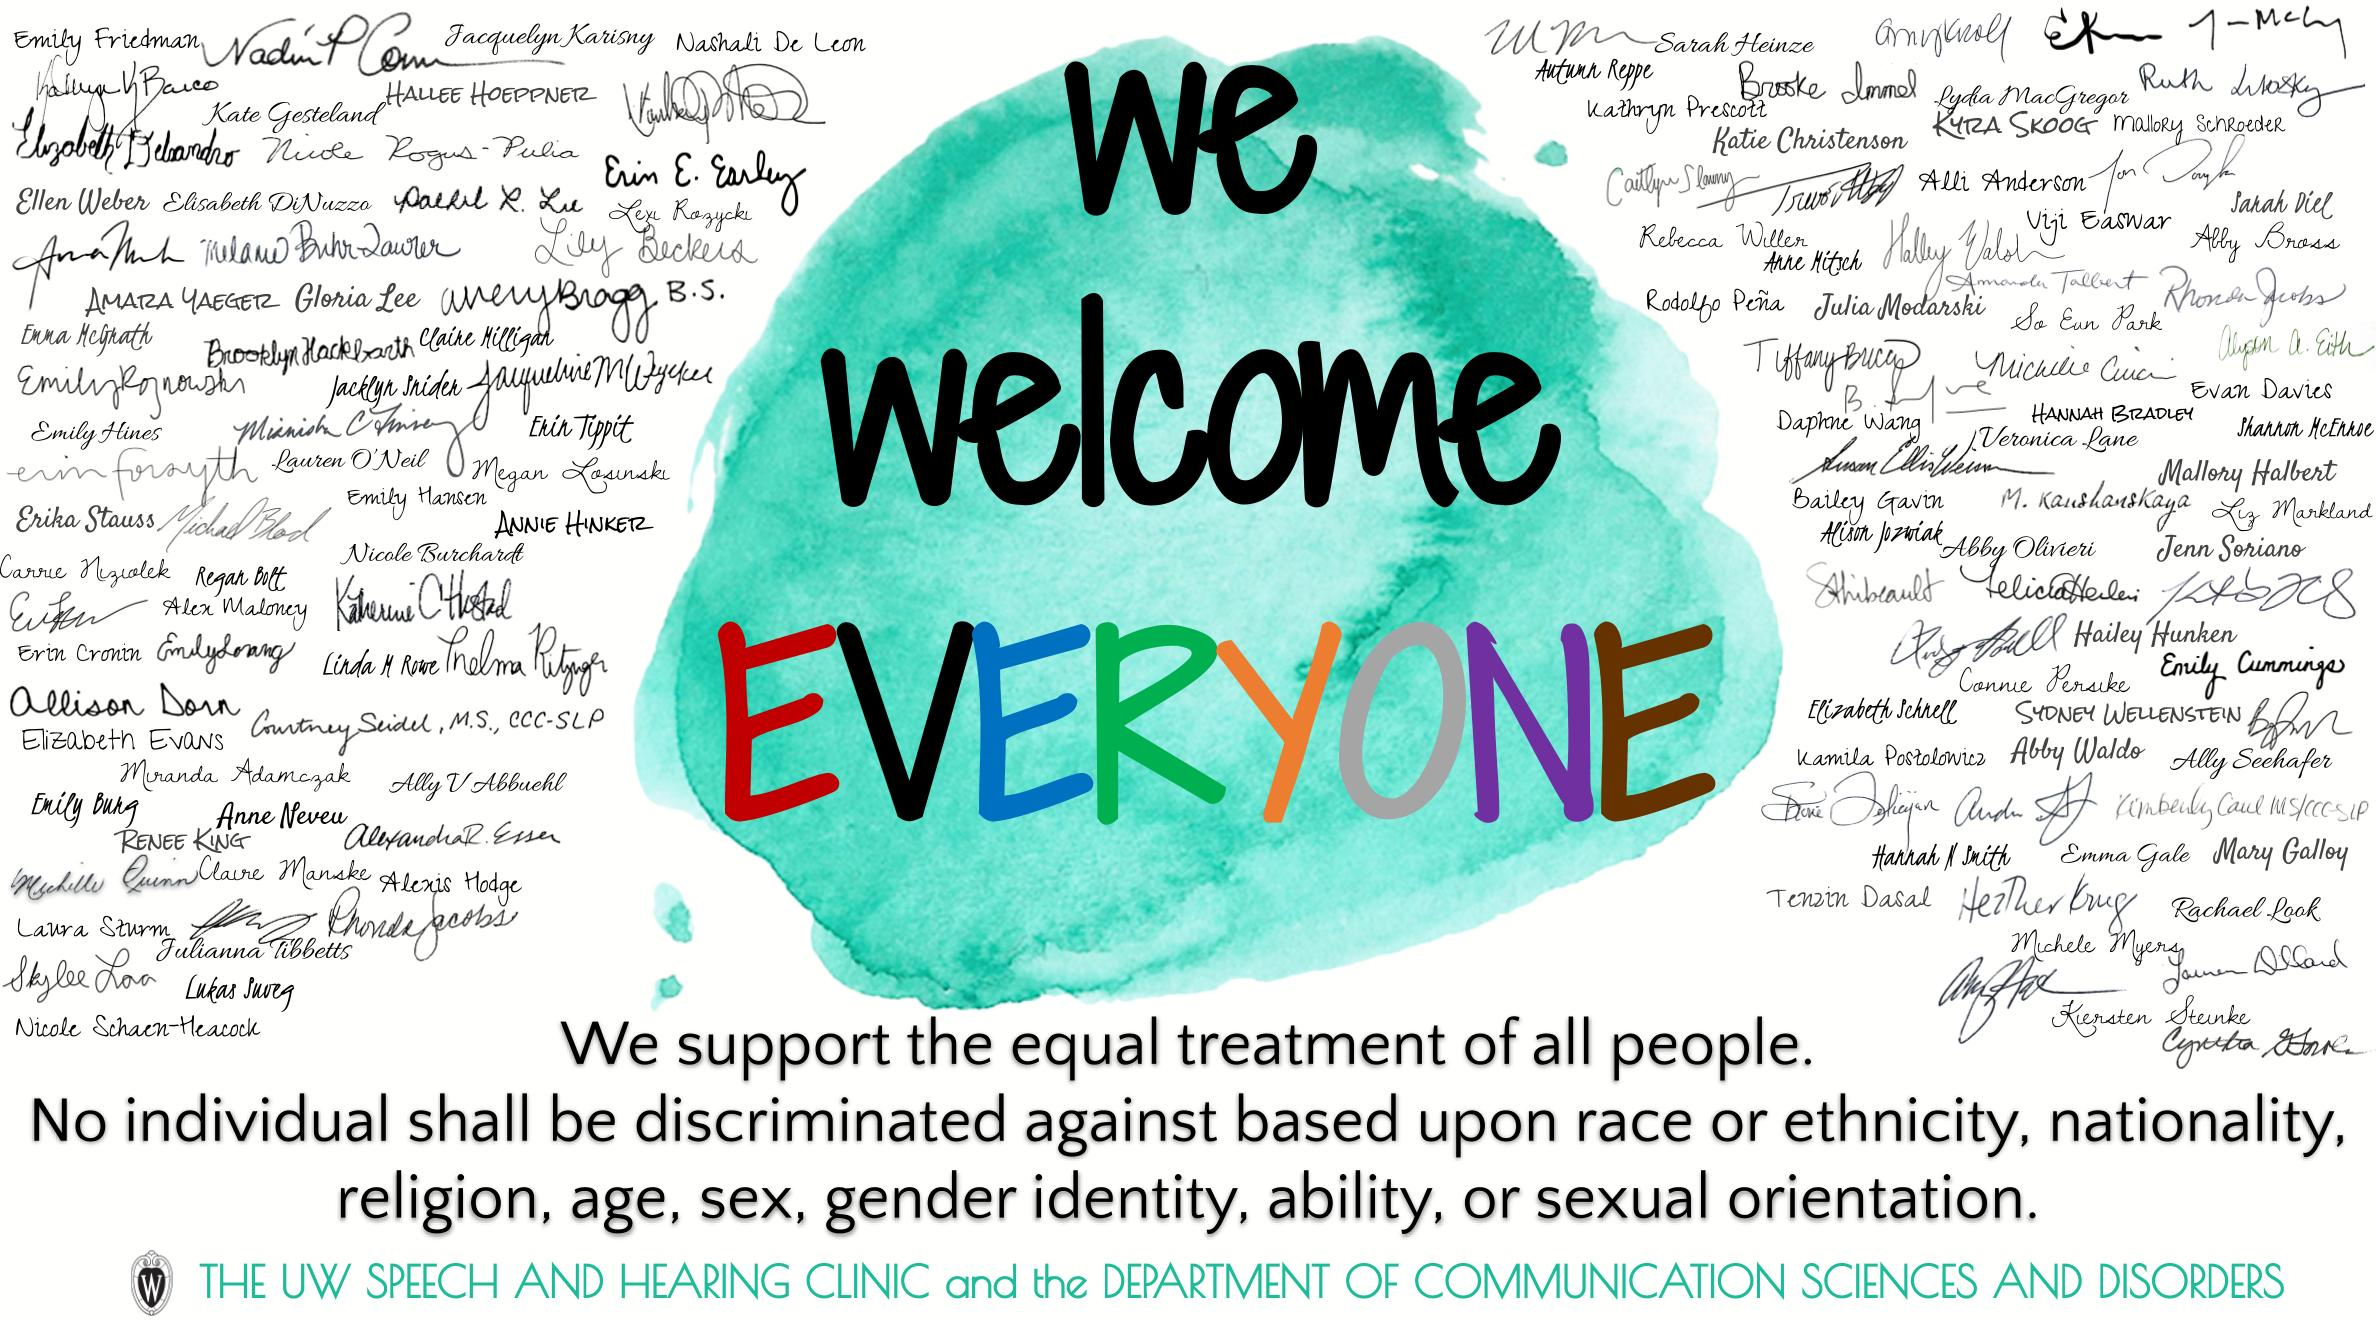 We Welcome Everyone - We support the equal treatment of all people. No individual shall be discriminated against based upon race or ethnicity, nationality, religion, age, sex, gender identity, ability, or sexual orientation.